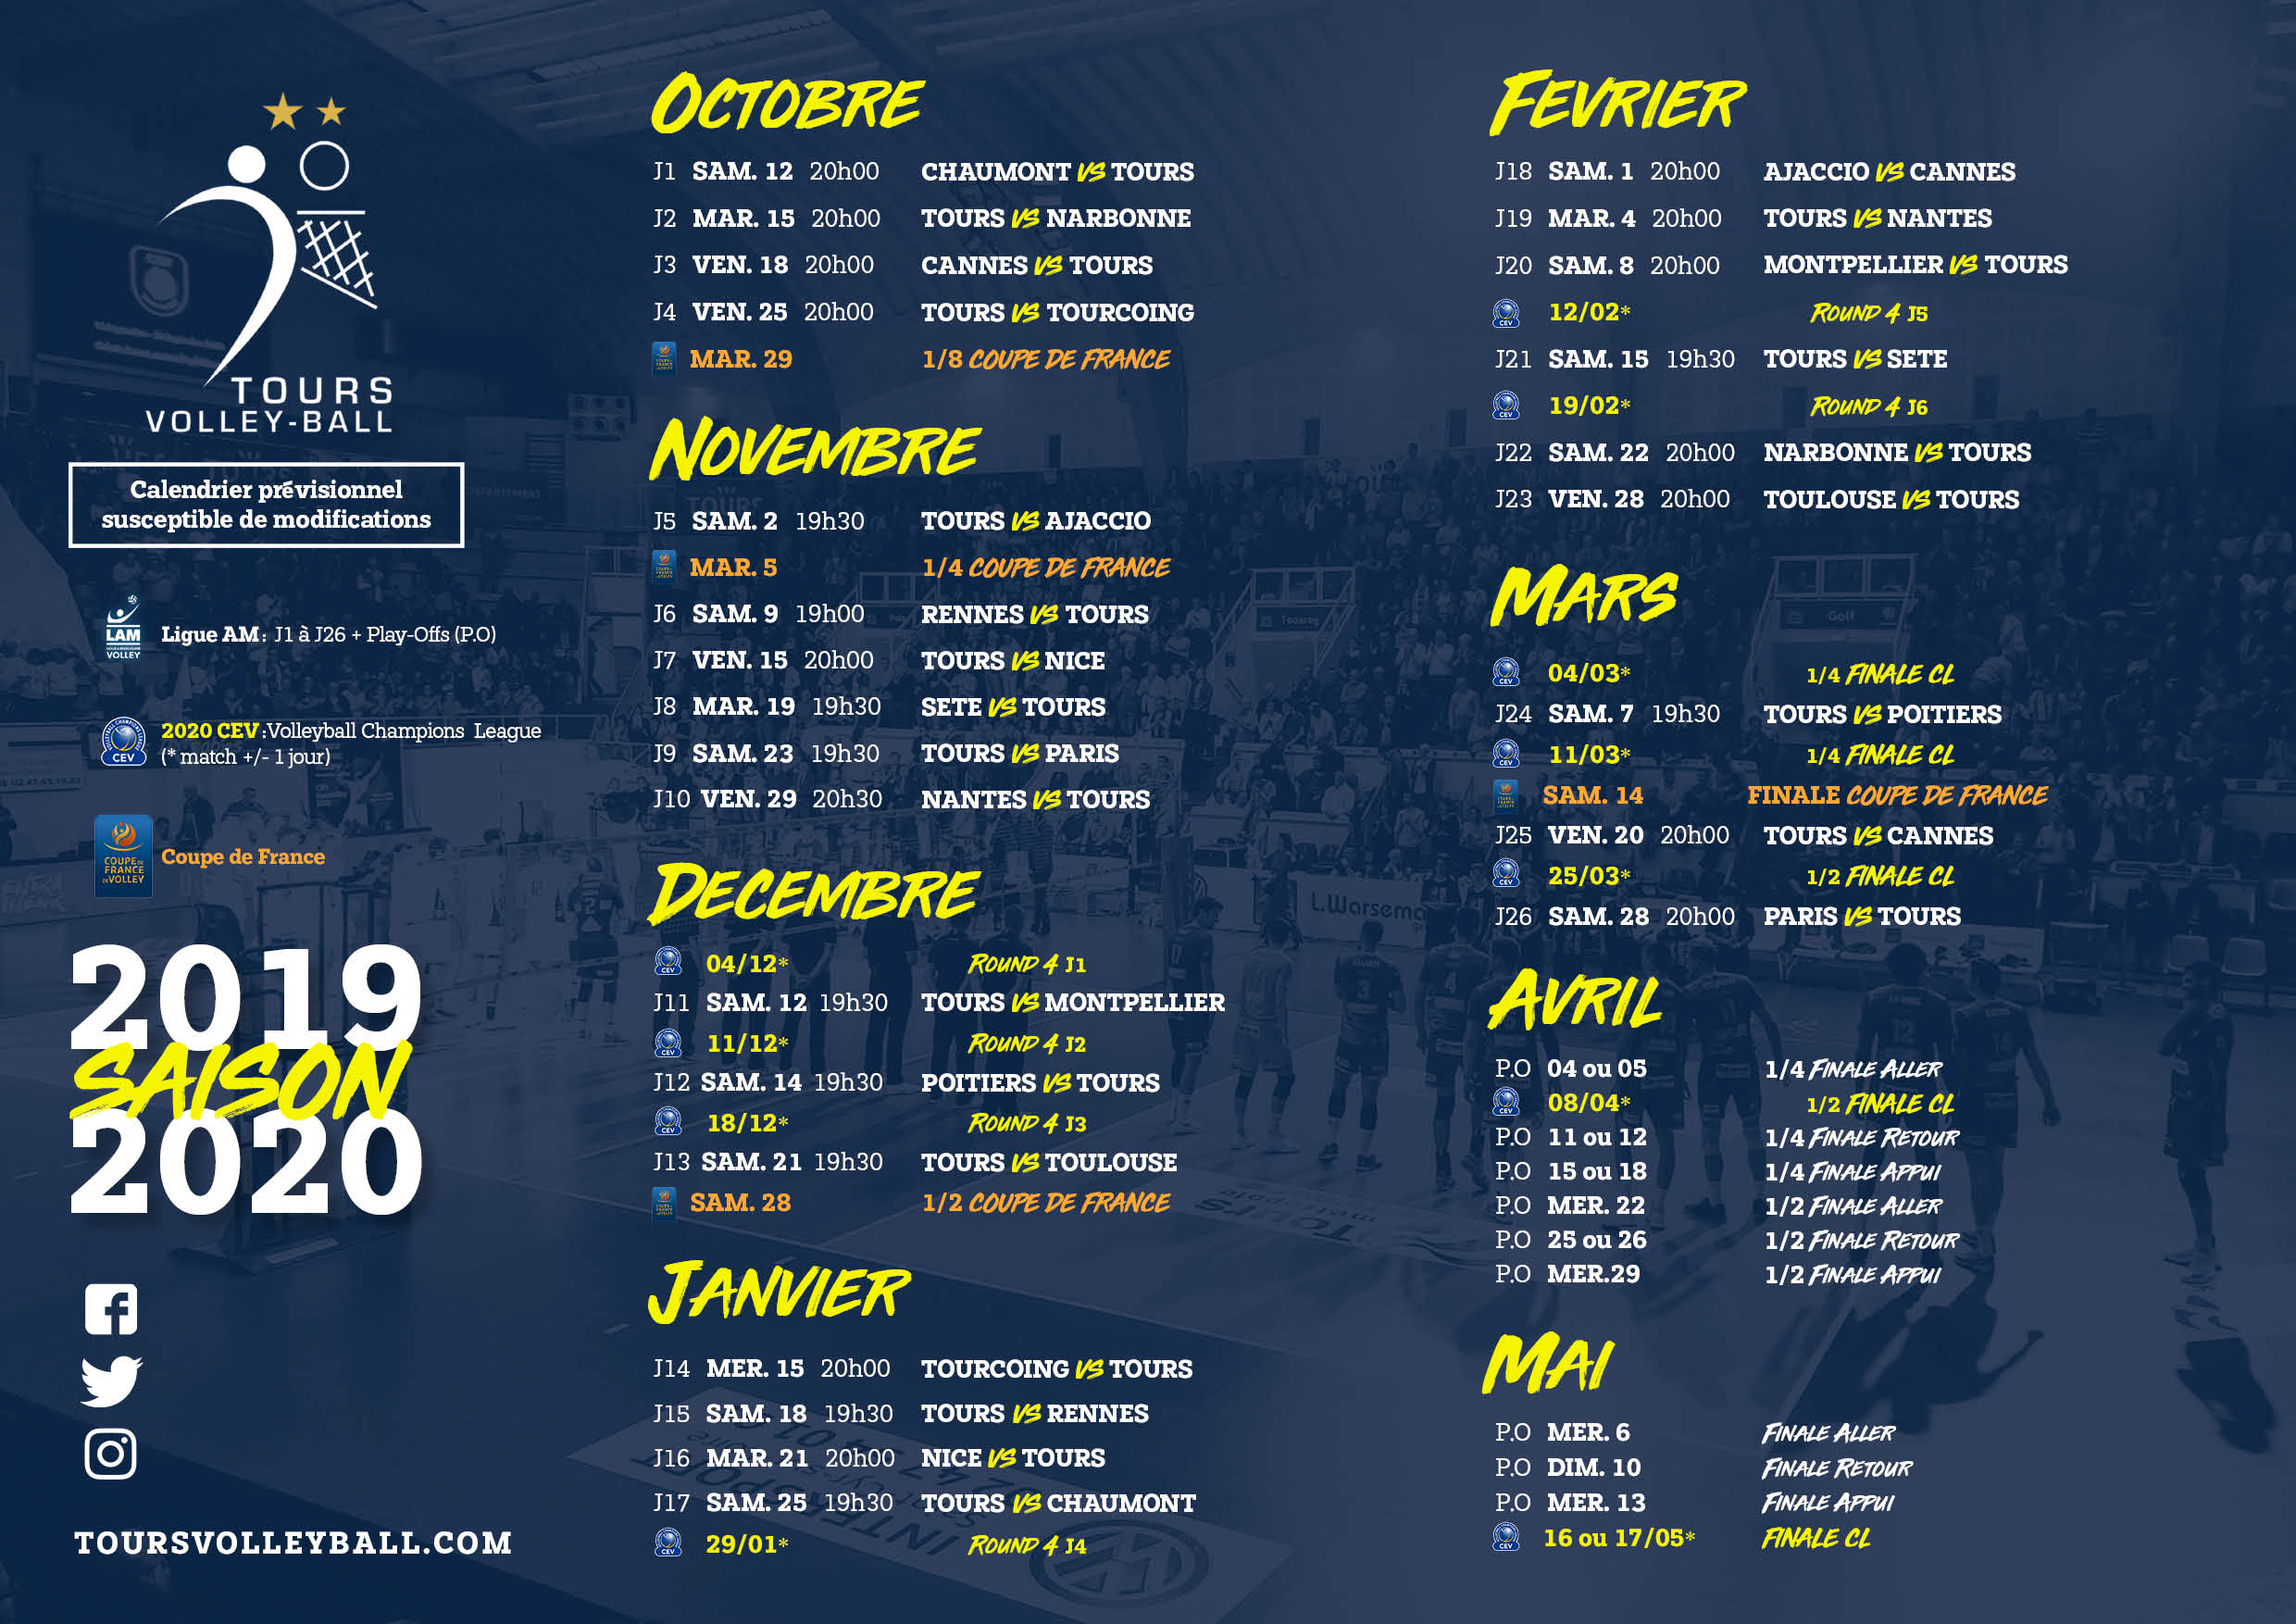 Calendrier Tours Volley Ball